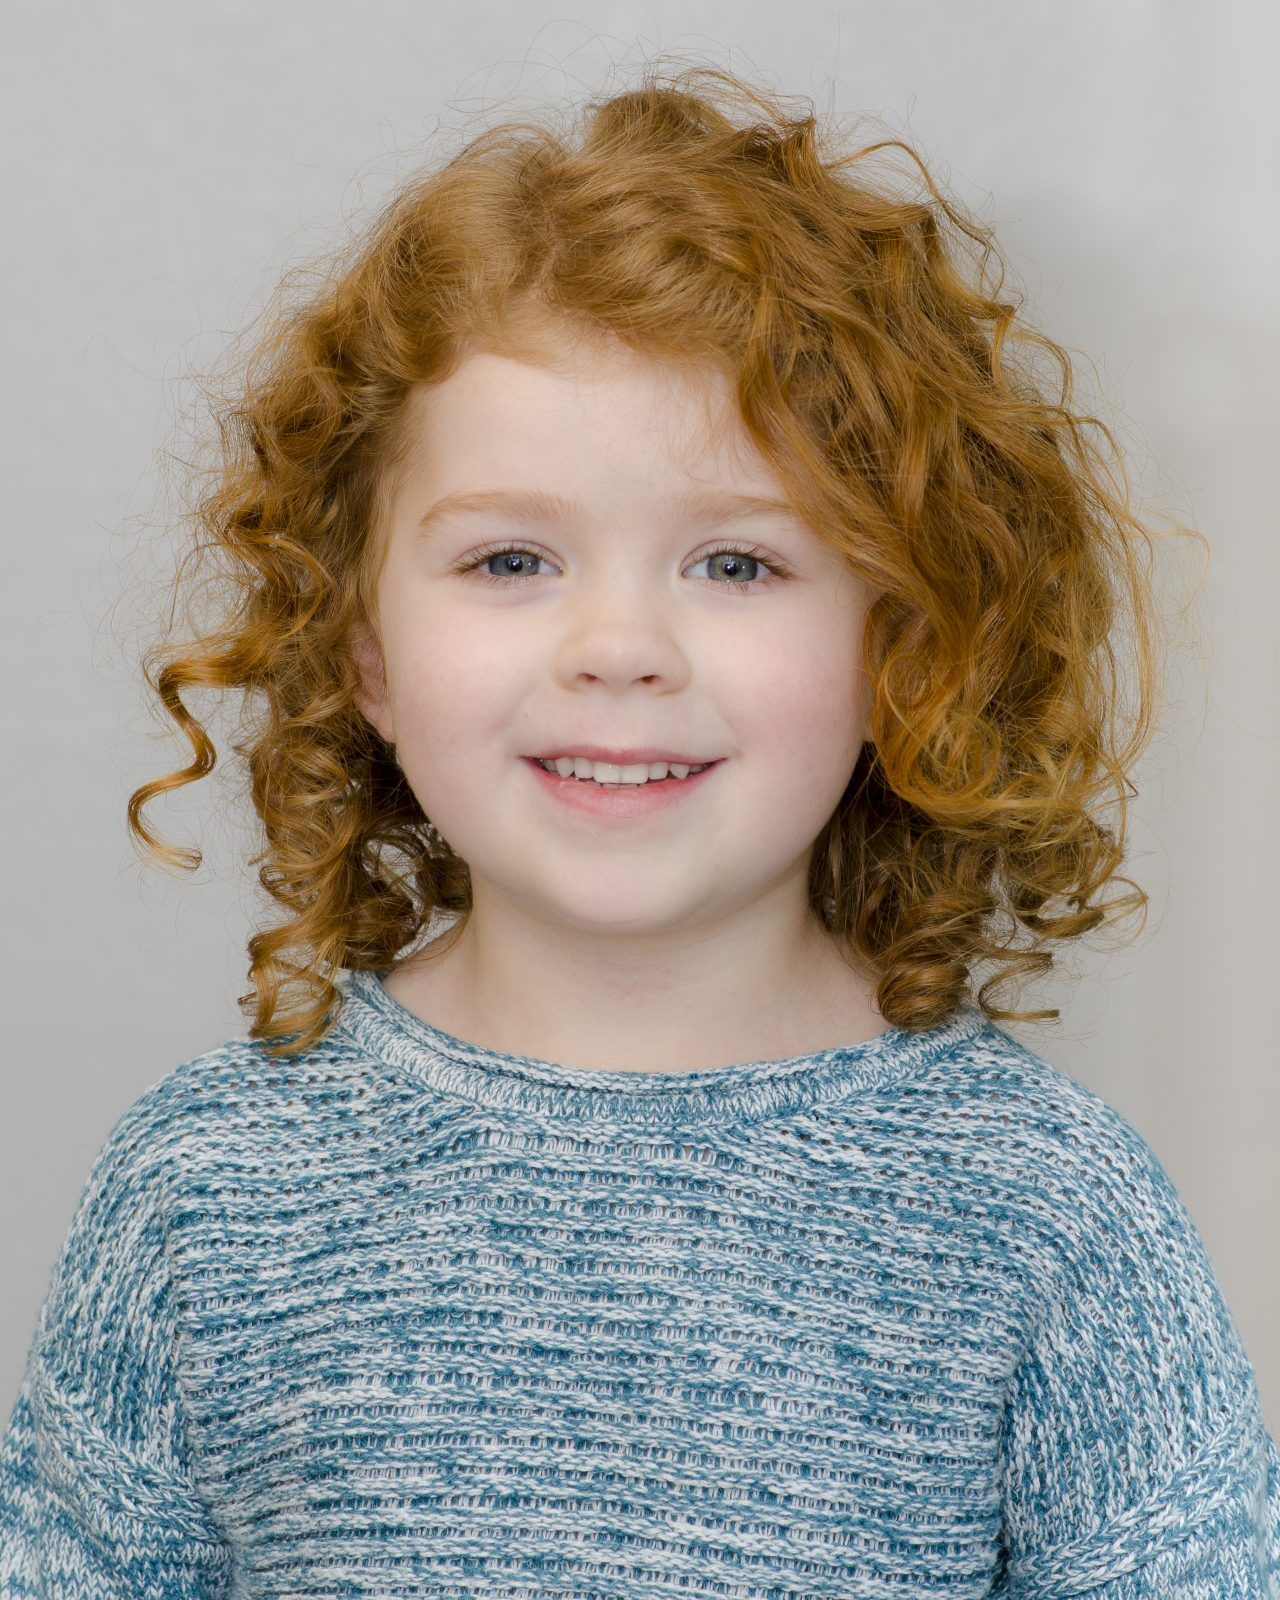 Everyday hairstyles for your kid with curly hair with